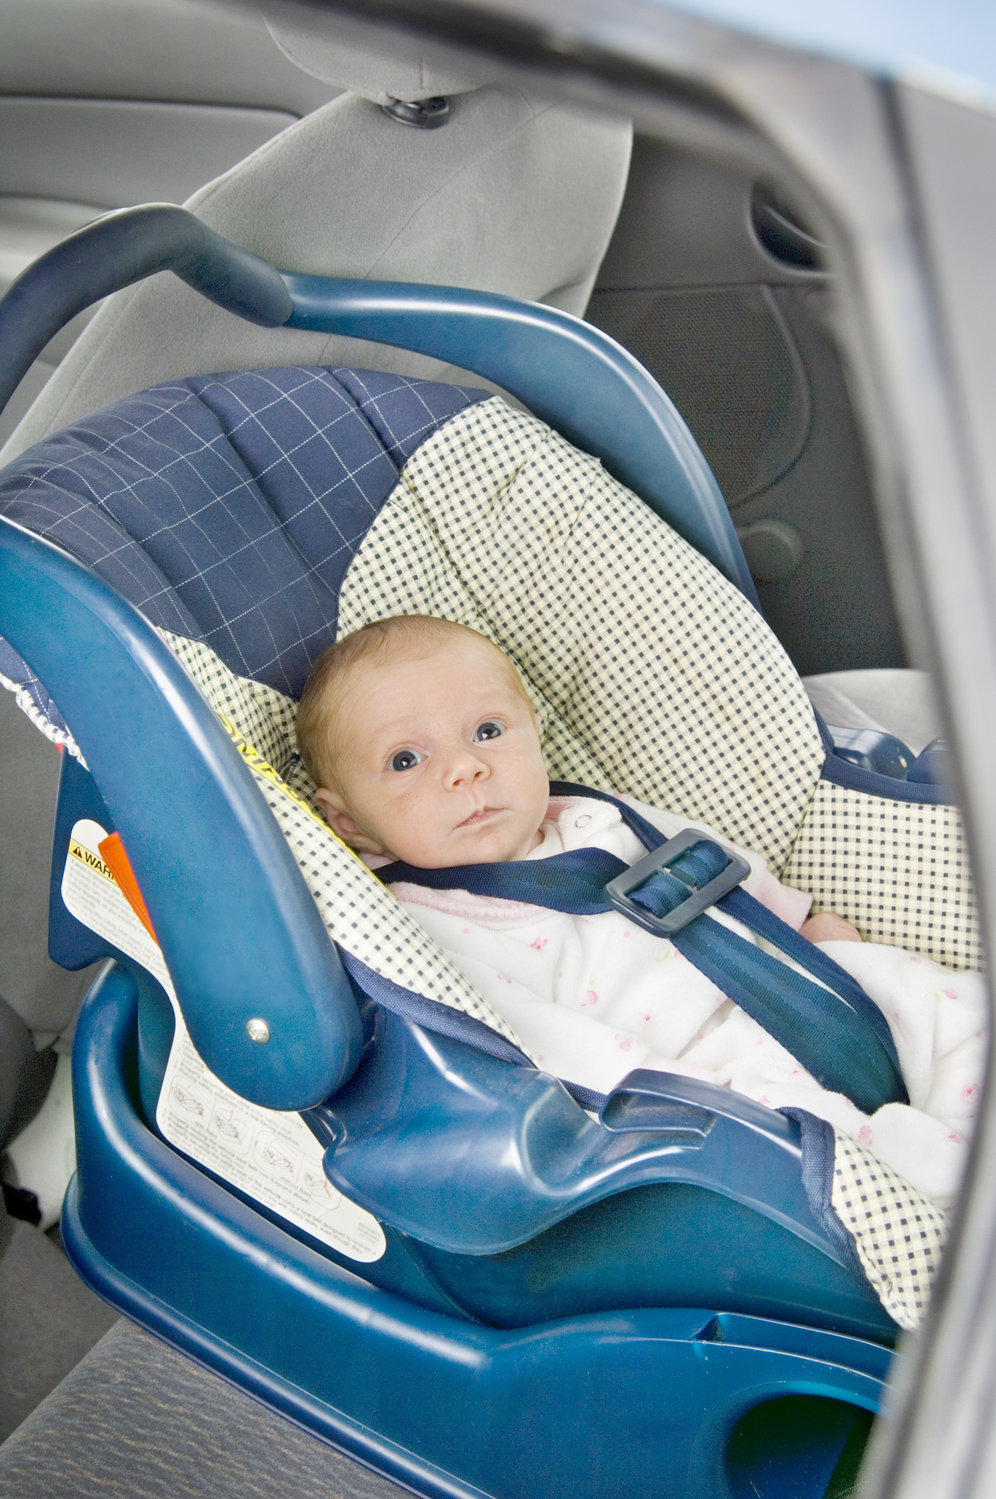 The NHTSA says child safety seats in passenger cars reduce the risk of fatal injury by 71 percent for infants and by 54 percent for toddlers.